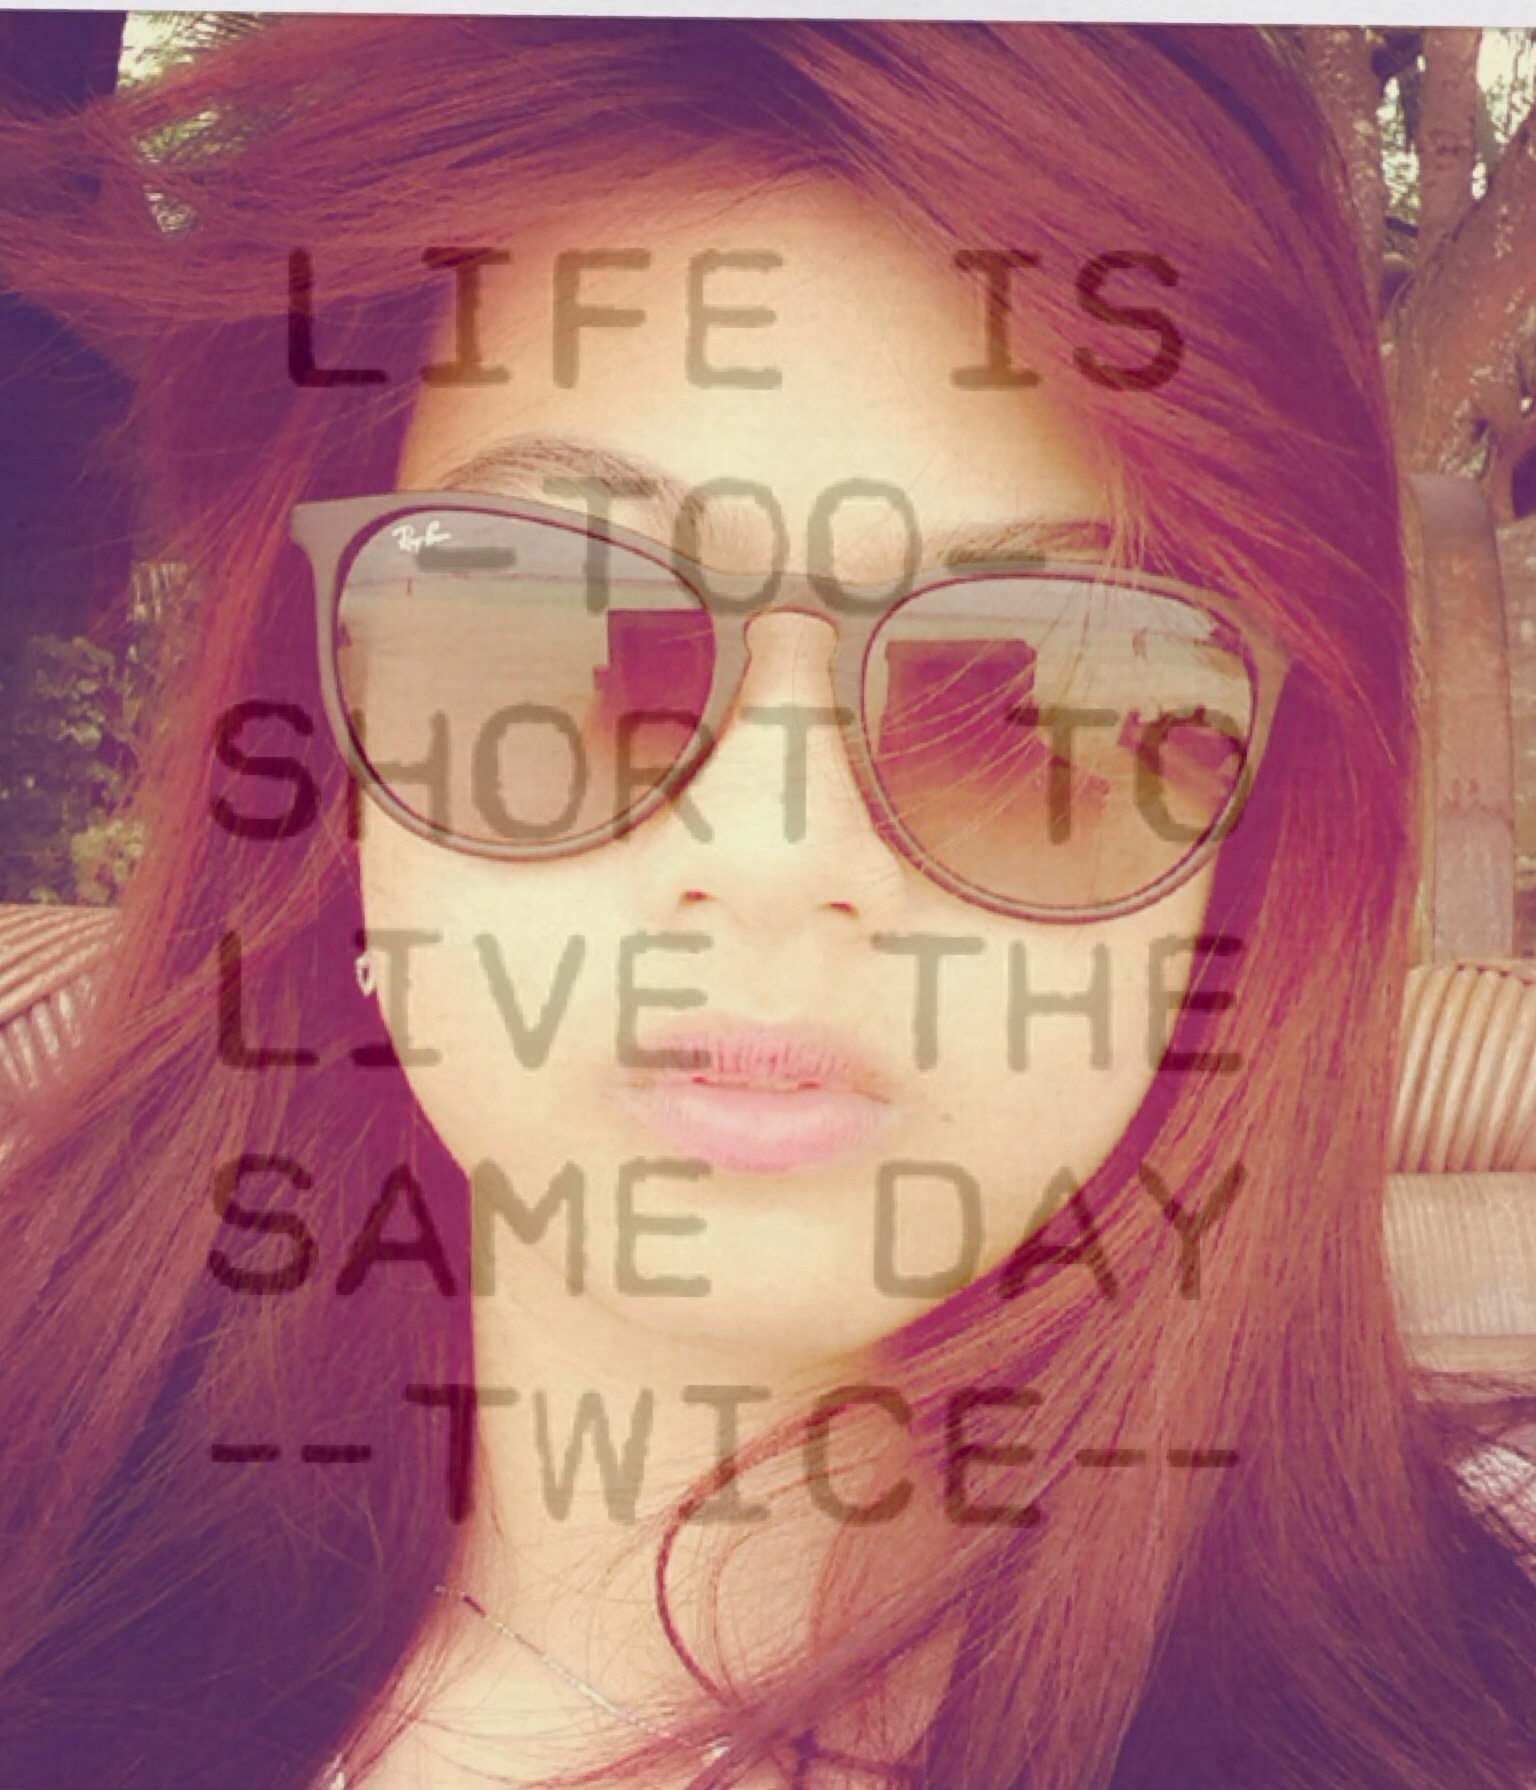 Life is too short,......